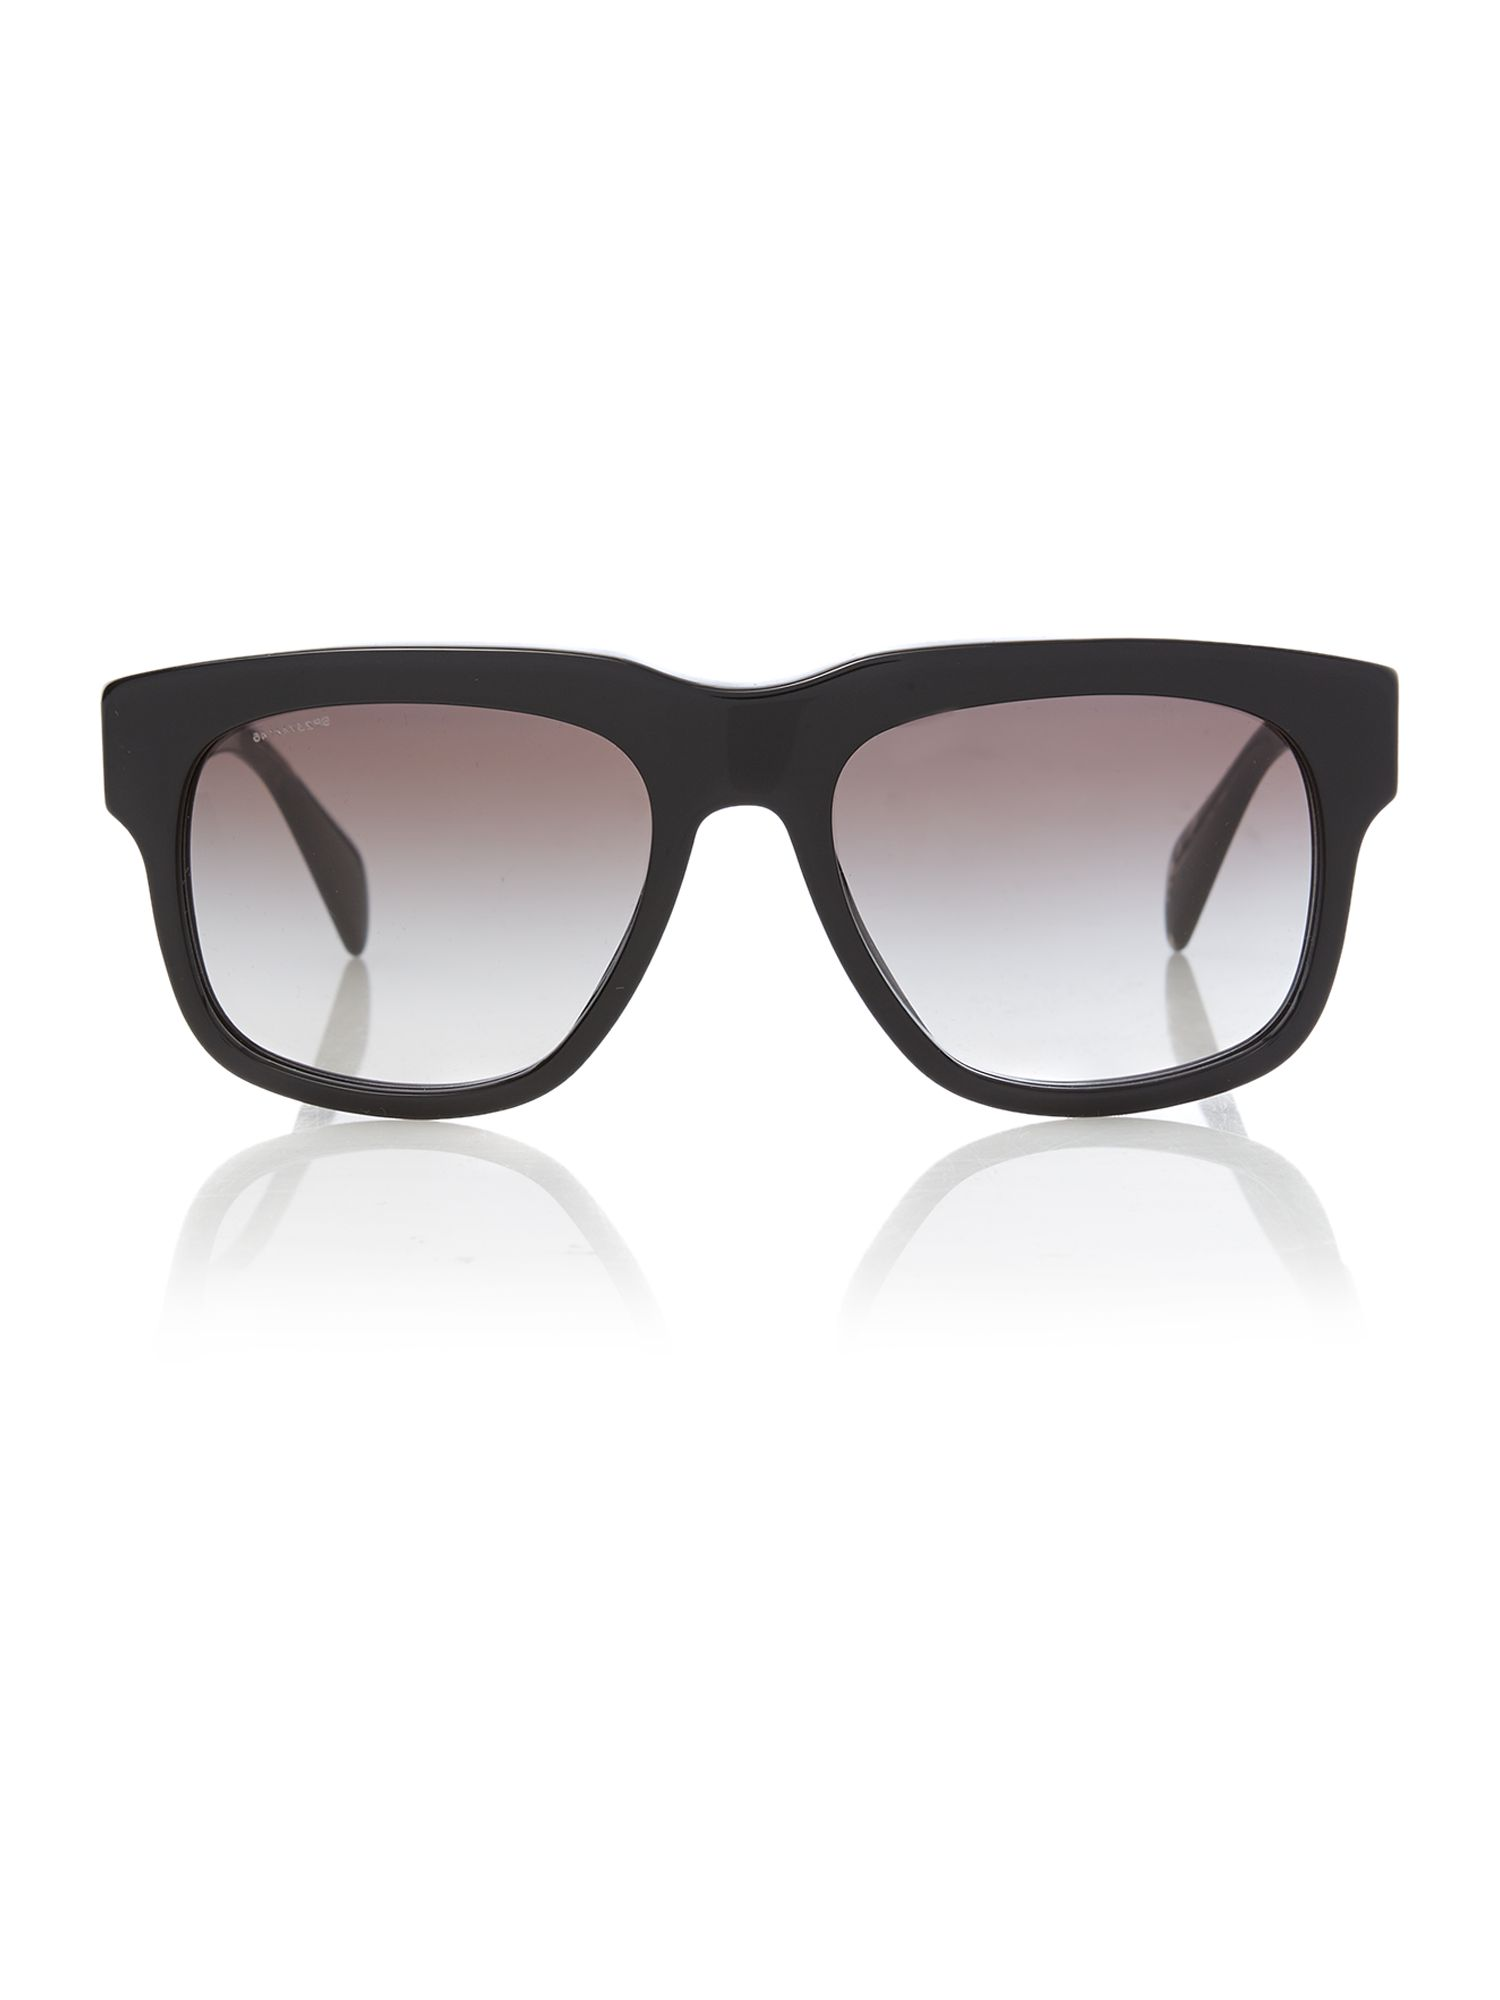 Pr 14qs men`s square sunglasses